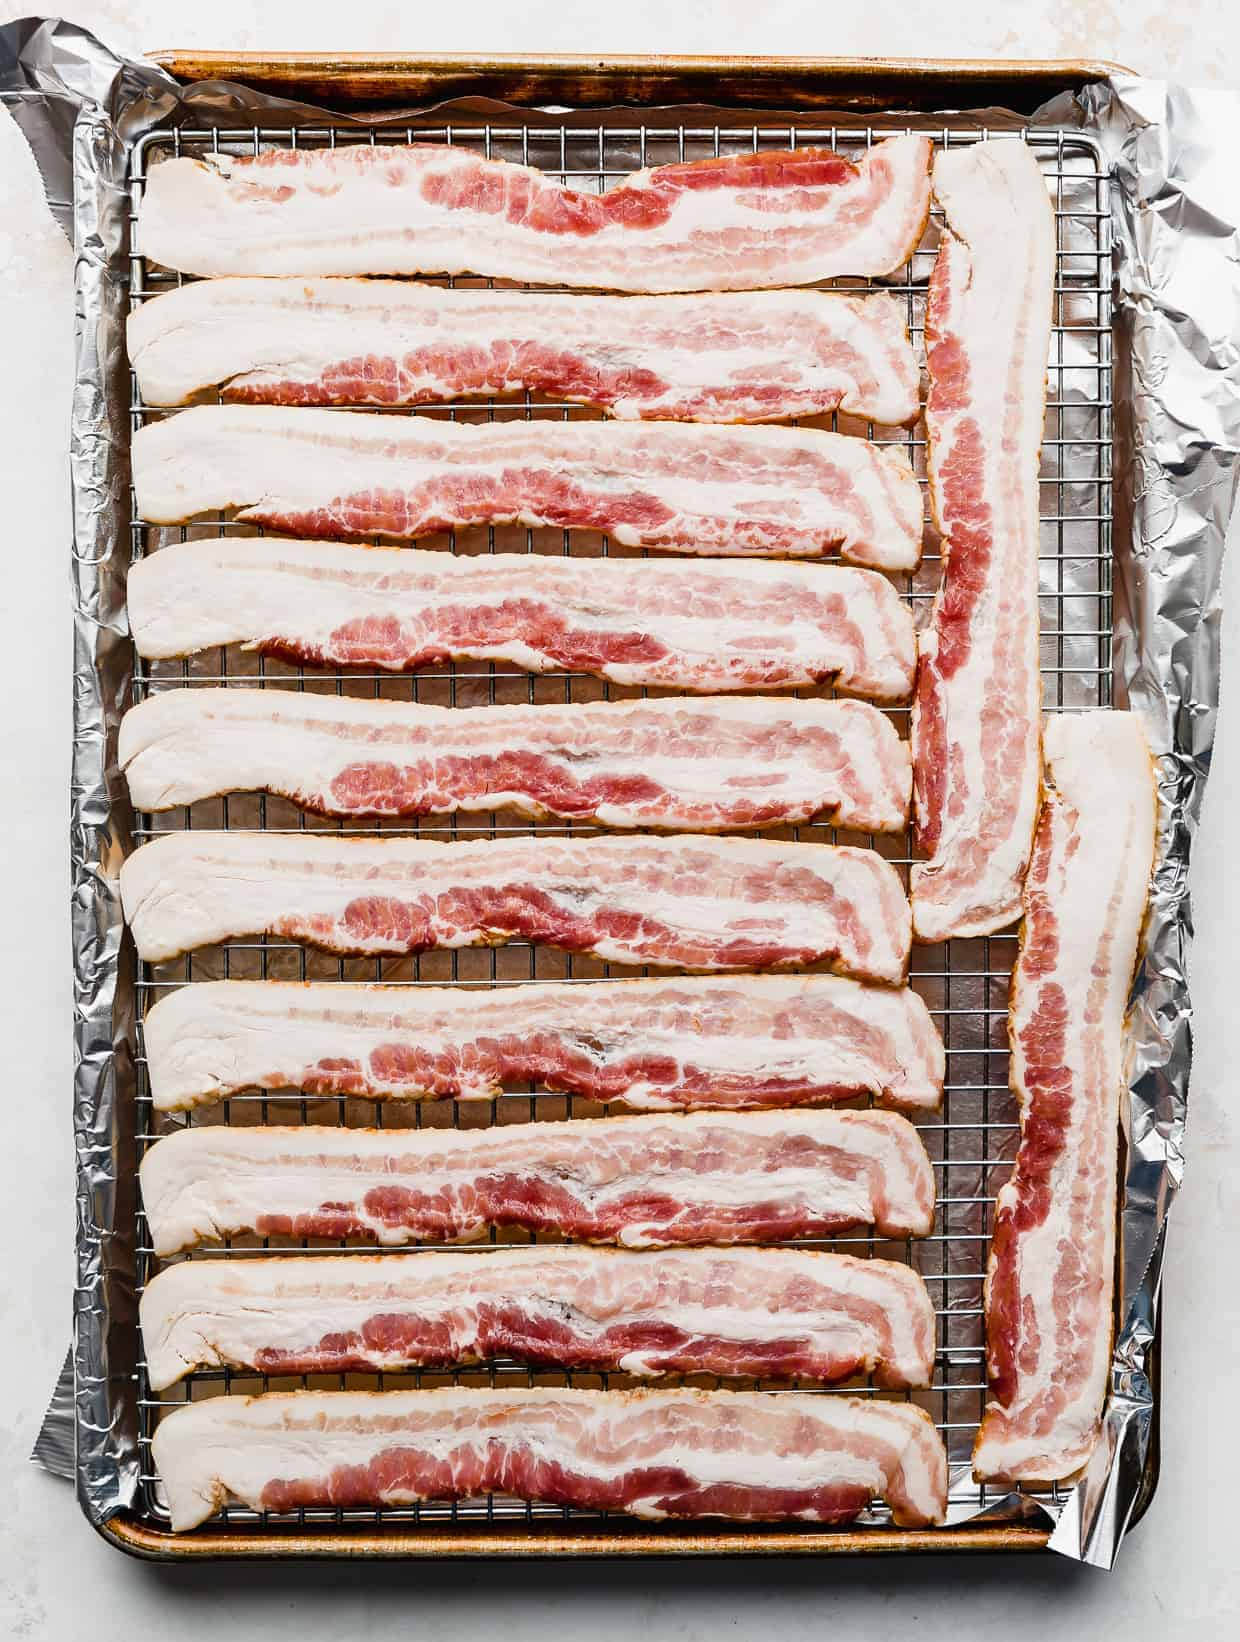 Raw bacon lined on a wire rack resting in a baking sheet.